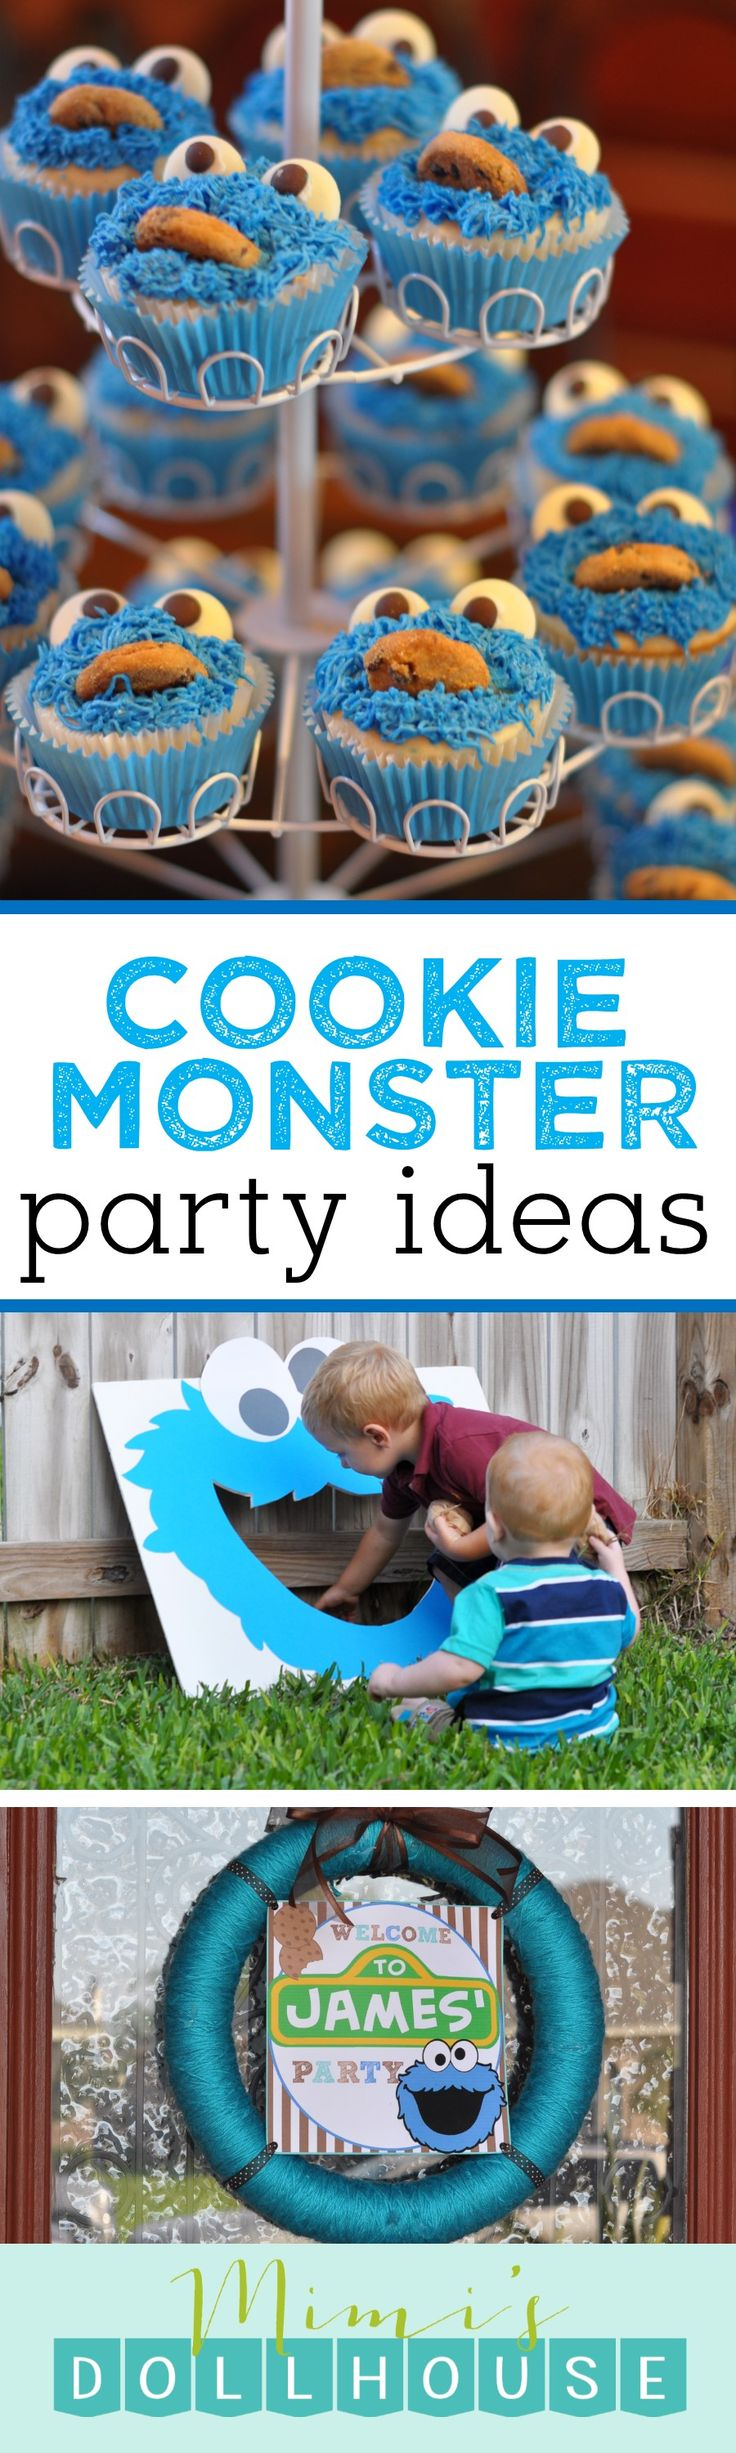 Sesame Street Party: James' Cookie Monster Birthday Bash.  This Sesame Street party is jam full of cute, cute cookie monster and Sesame Street Party ideas. via @mimisdollhouse